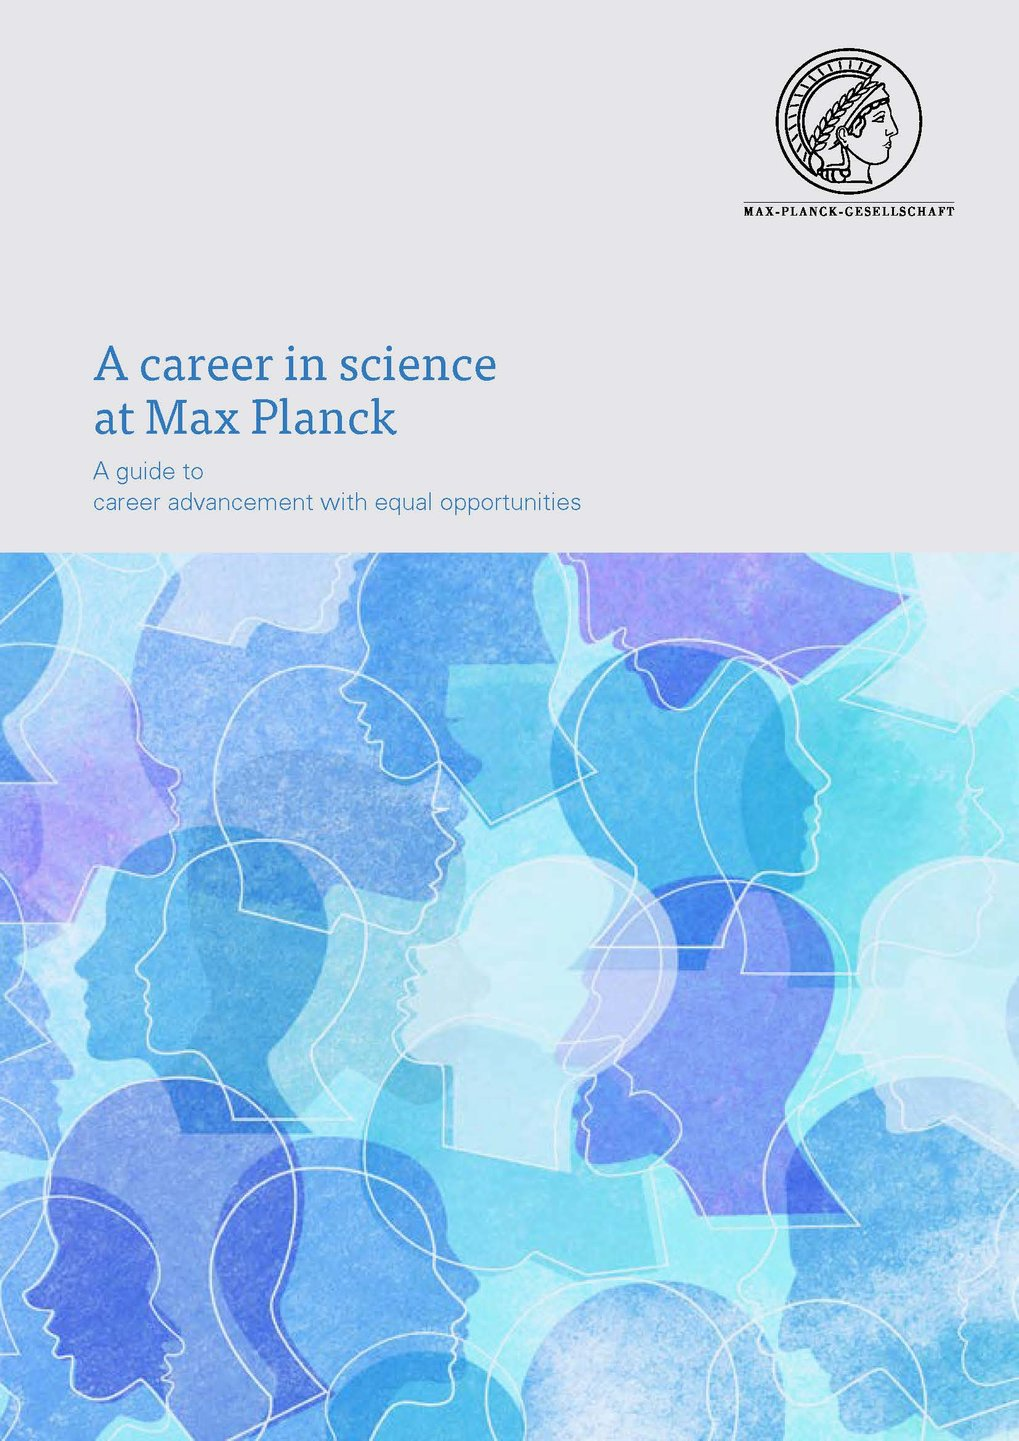 A Career in Science at Max Planck